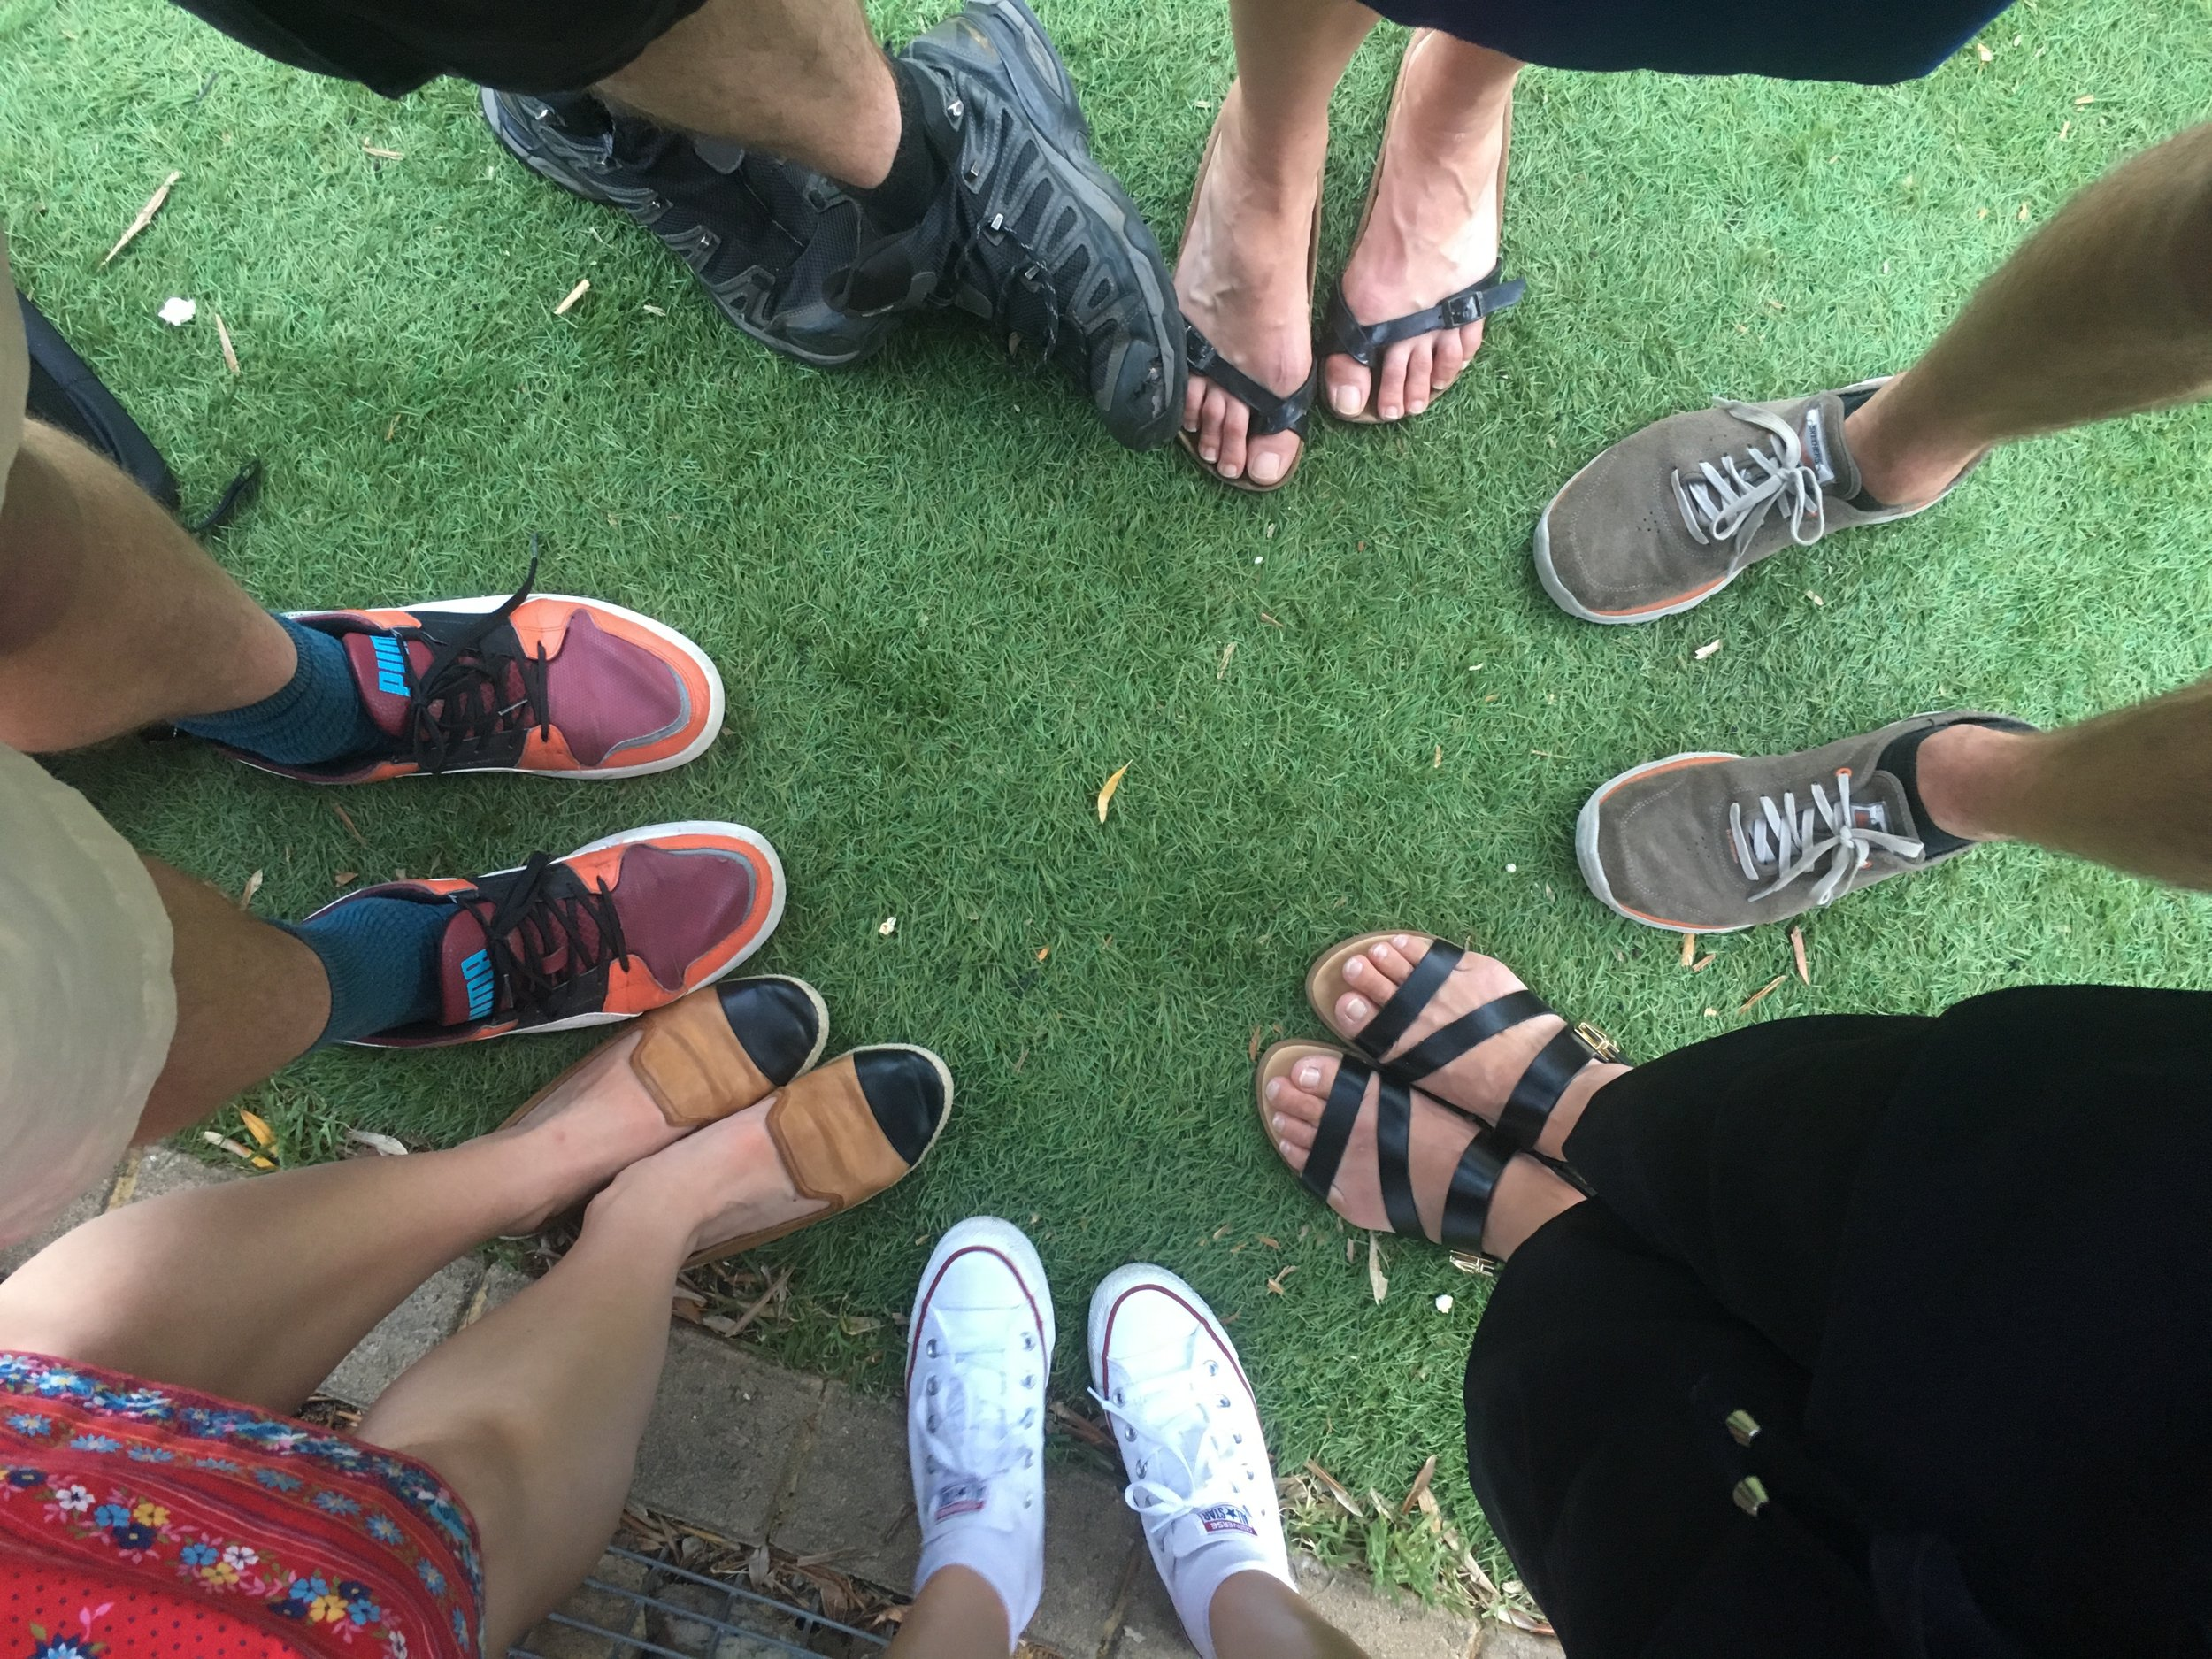 Our feet on the Friday after we'd finished our last improv... we were getting drunk at a beer garden, doing our fabulous moves we'd learnt during the workshop in front of the non-dancers of the crowd. Love an audience.